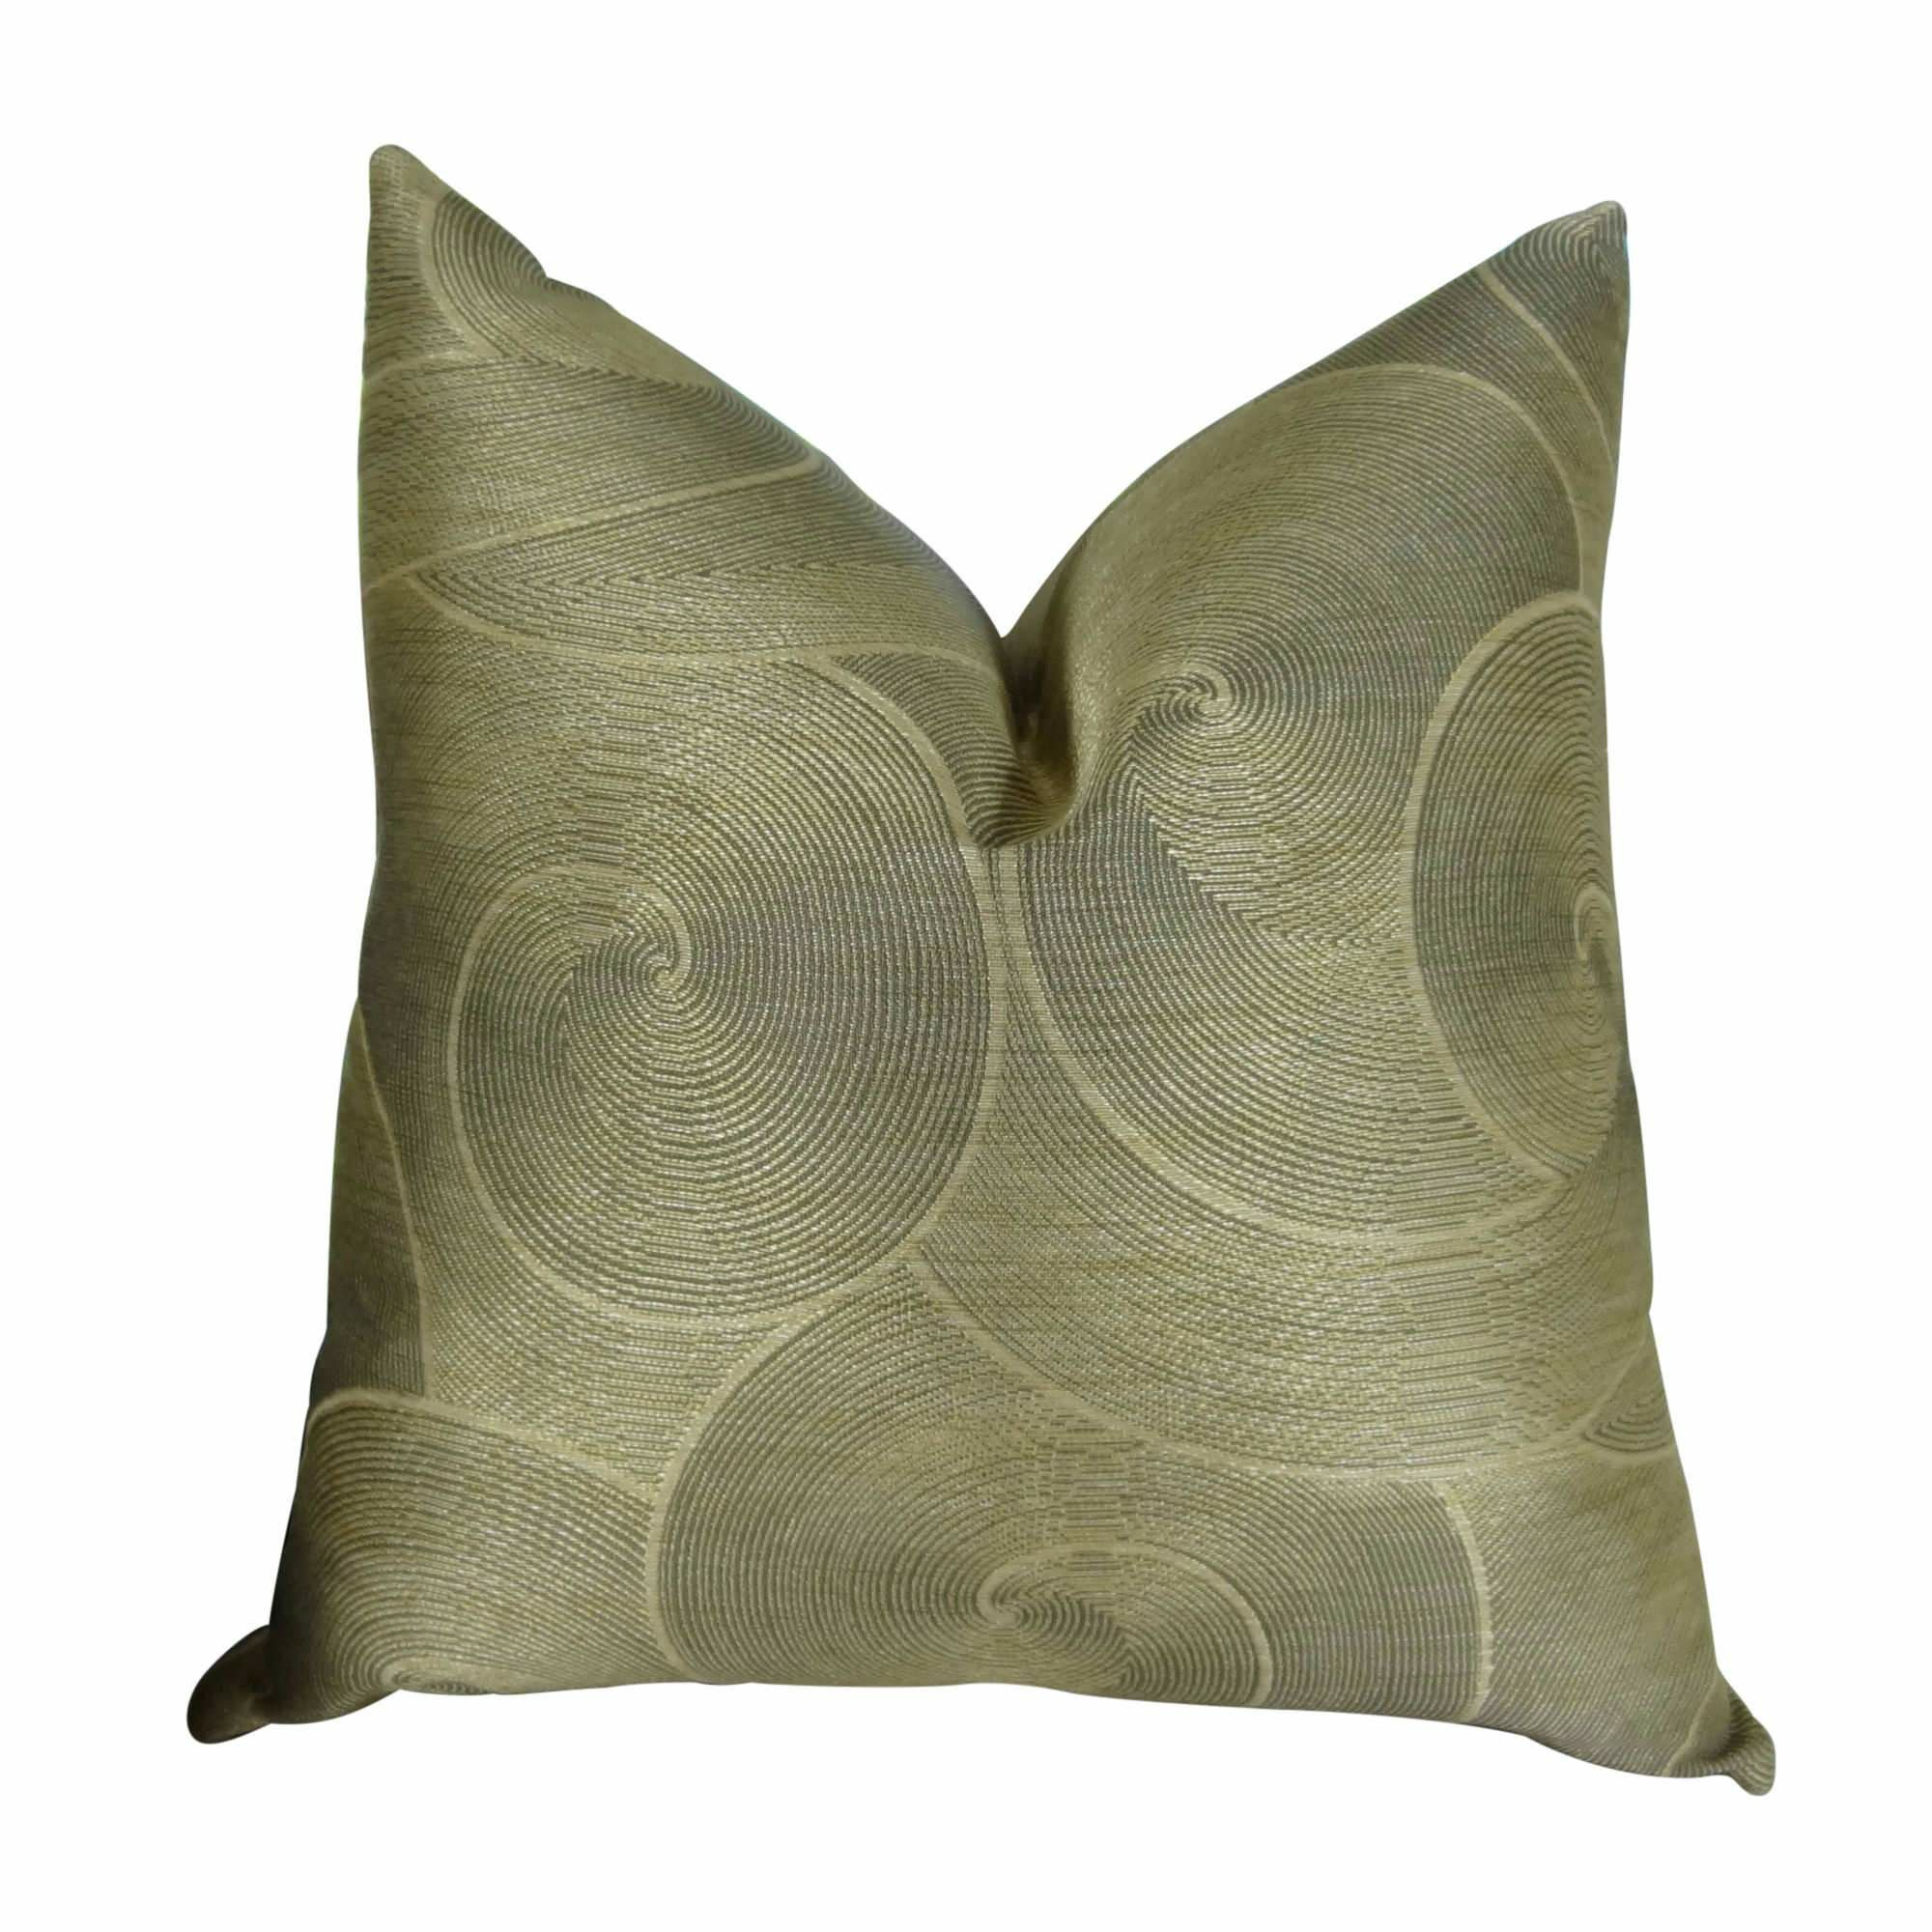 Jorgenson Muted Pewter Stardust Luxury Pillow Fill Material: Cover Only - No Insert, Size: 24